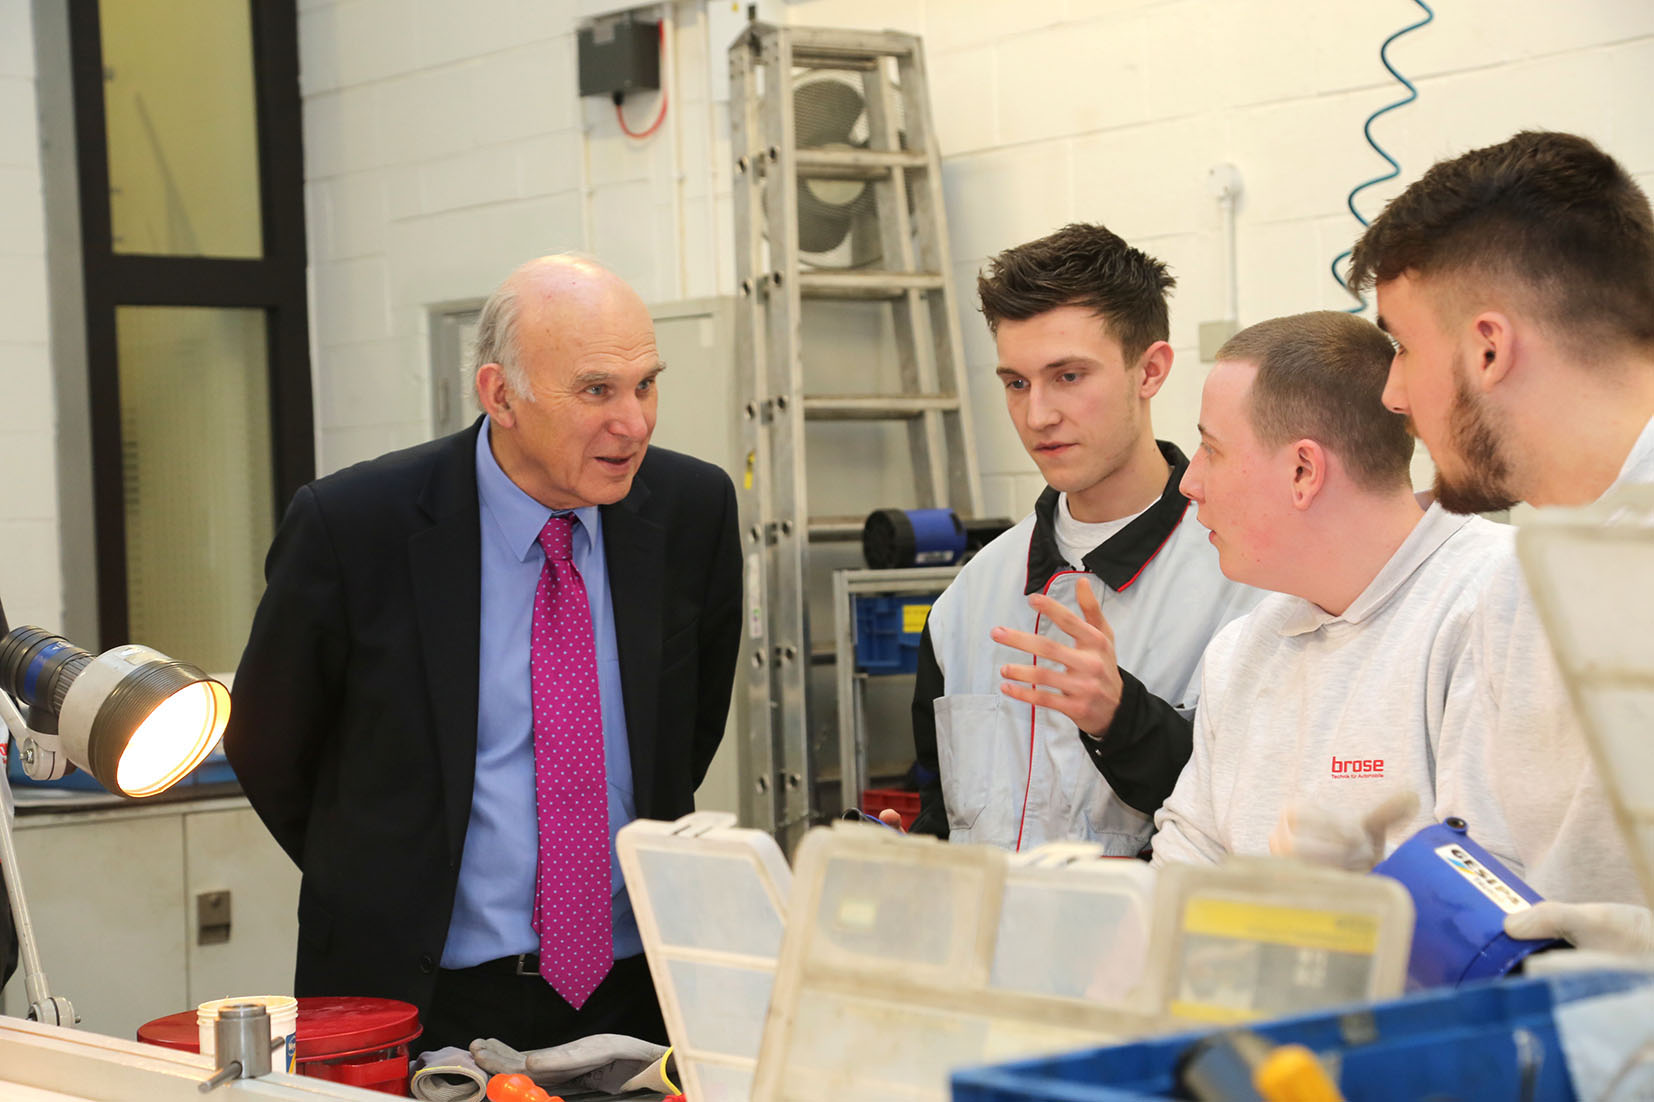 New Lib Dem leader Vince Cable will lead the fight to change the direction of Britain